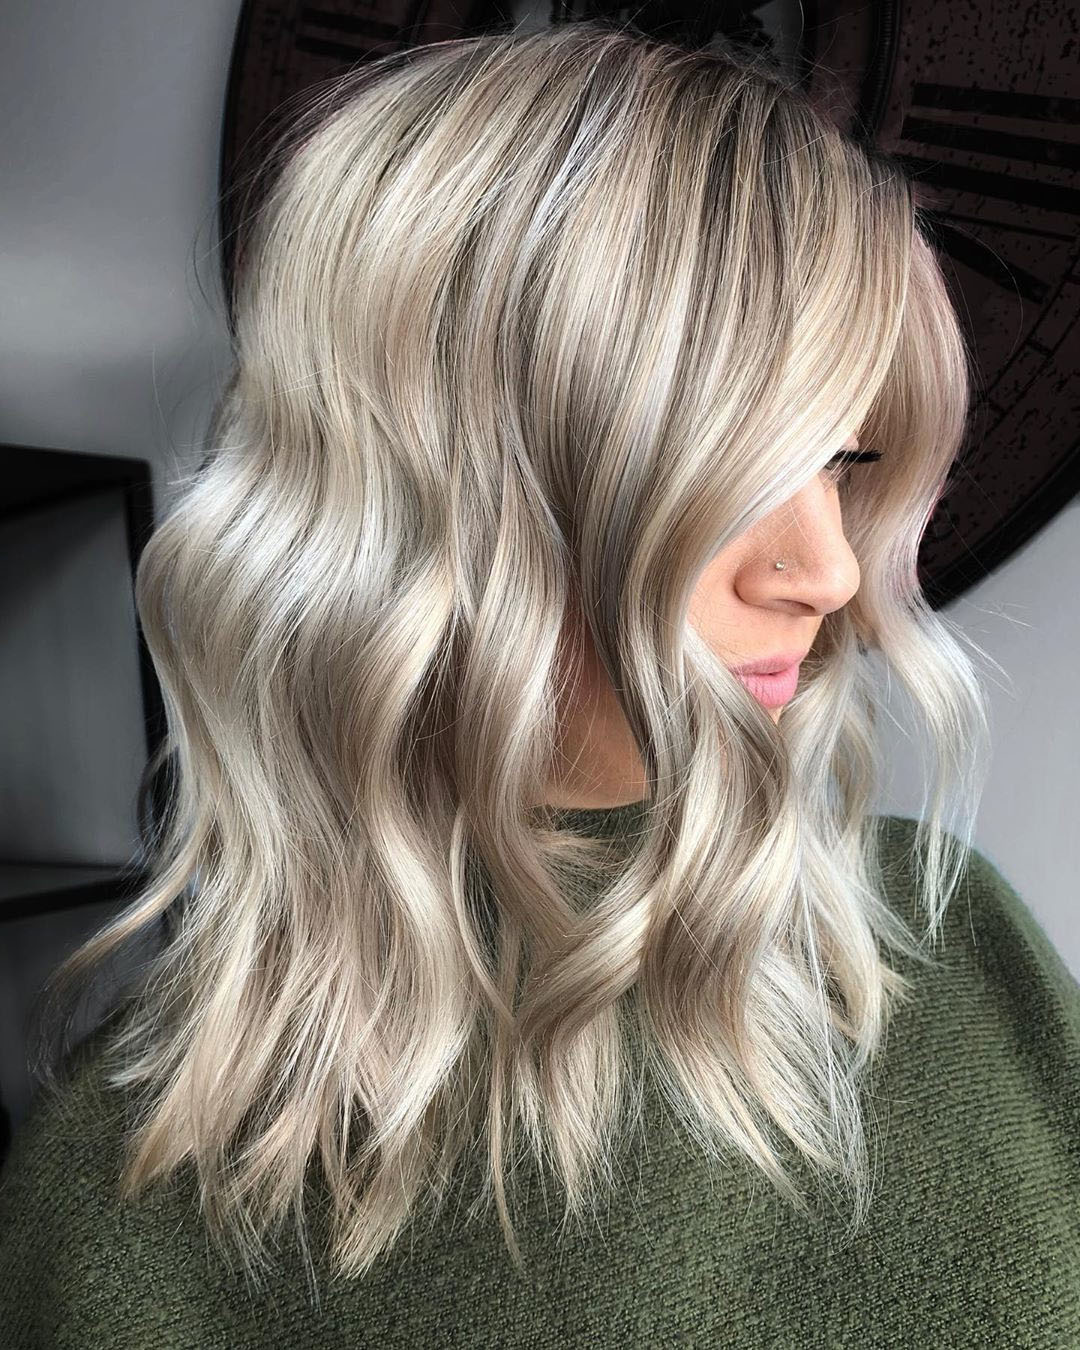 Long Bob Hairstyle for Natural Wavy Hair